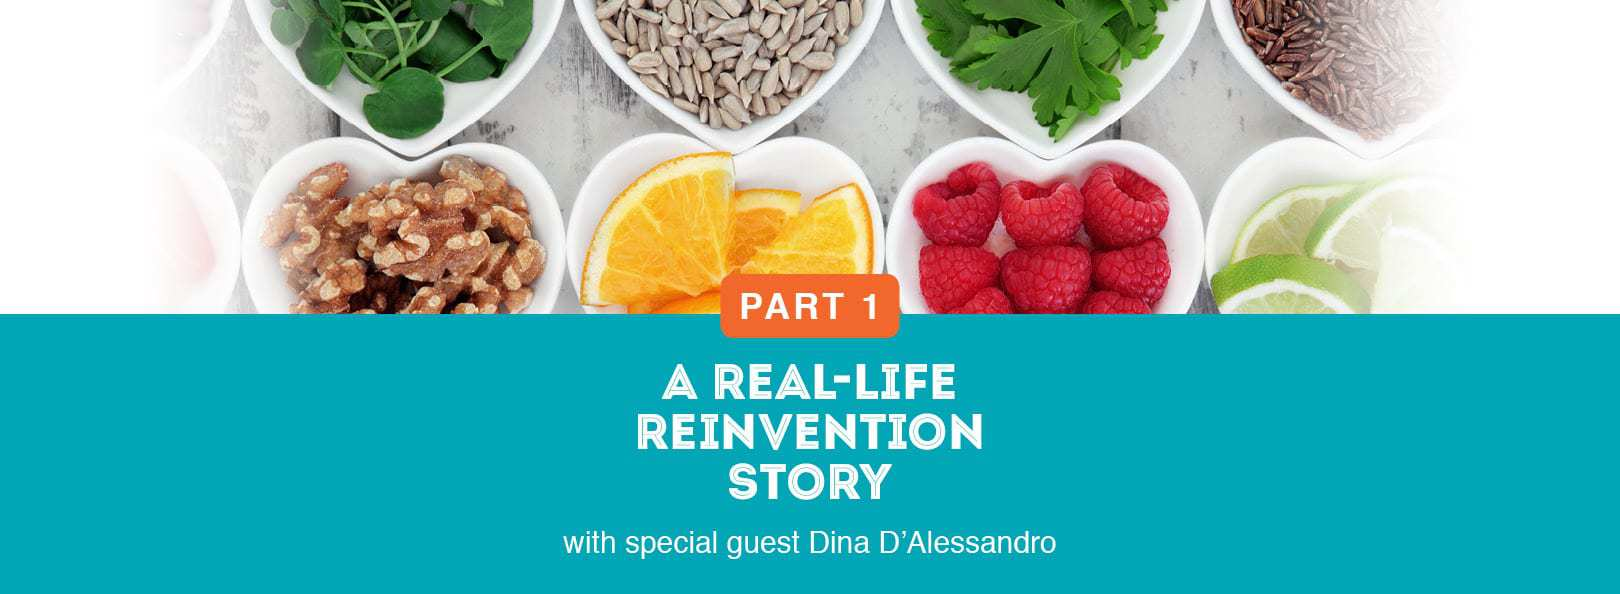 A Real-Life Reinvention Story with special guest Dina D'Alessandro - Part 1